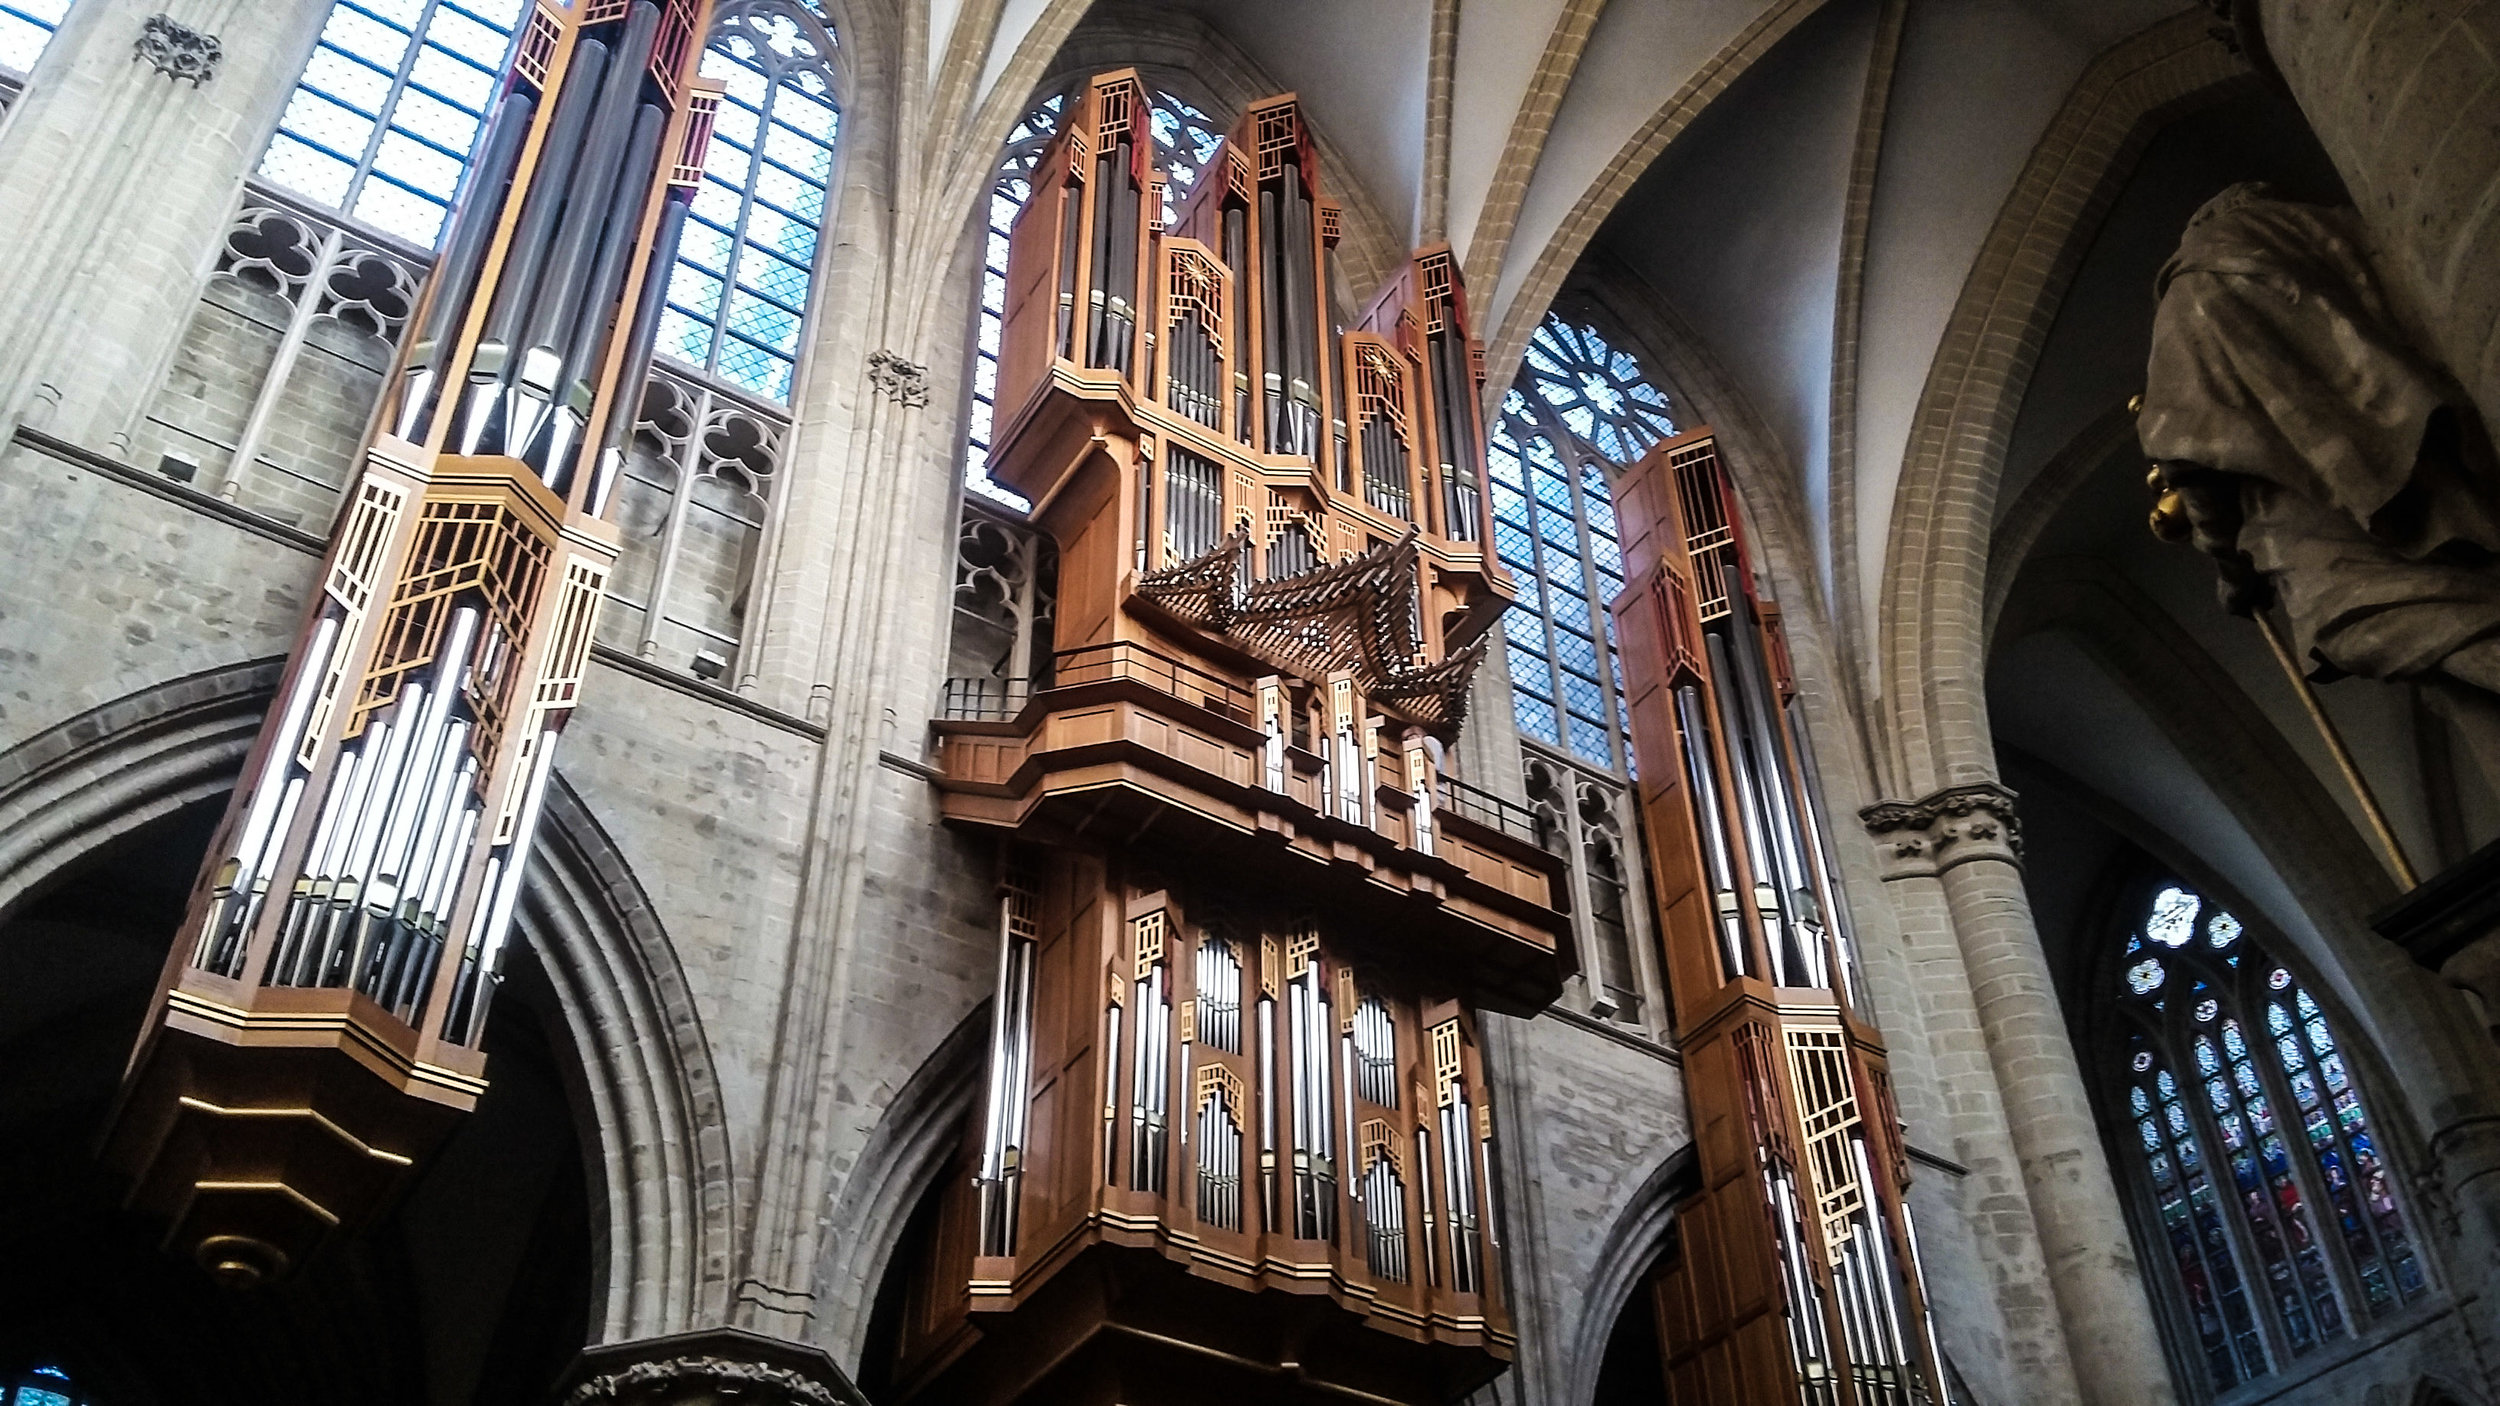 They were practicing the organ in St. Nicholas Church in Brussels